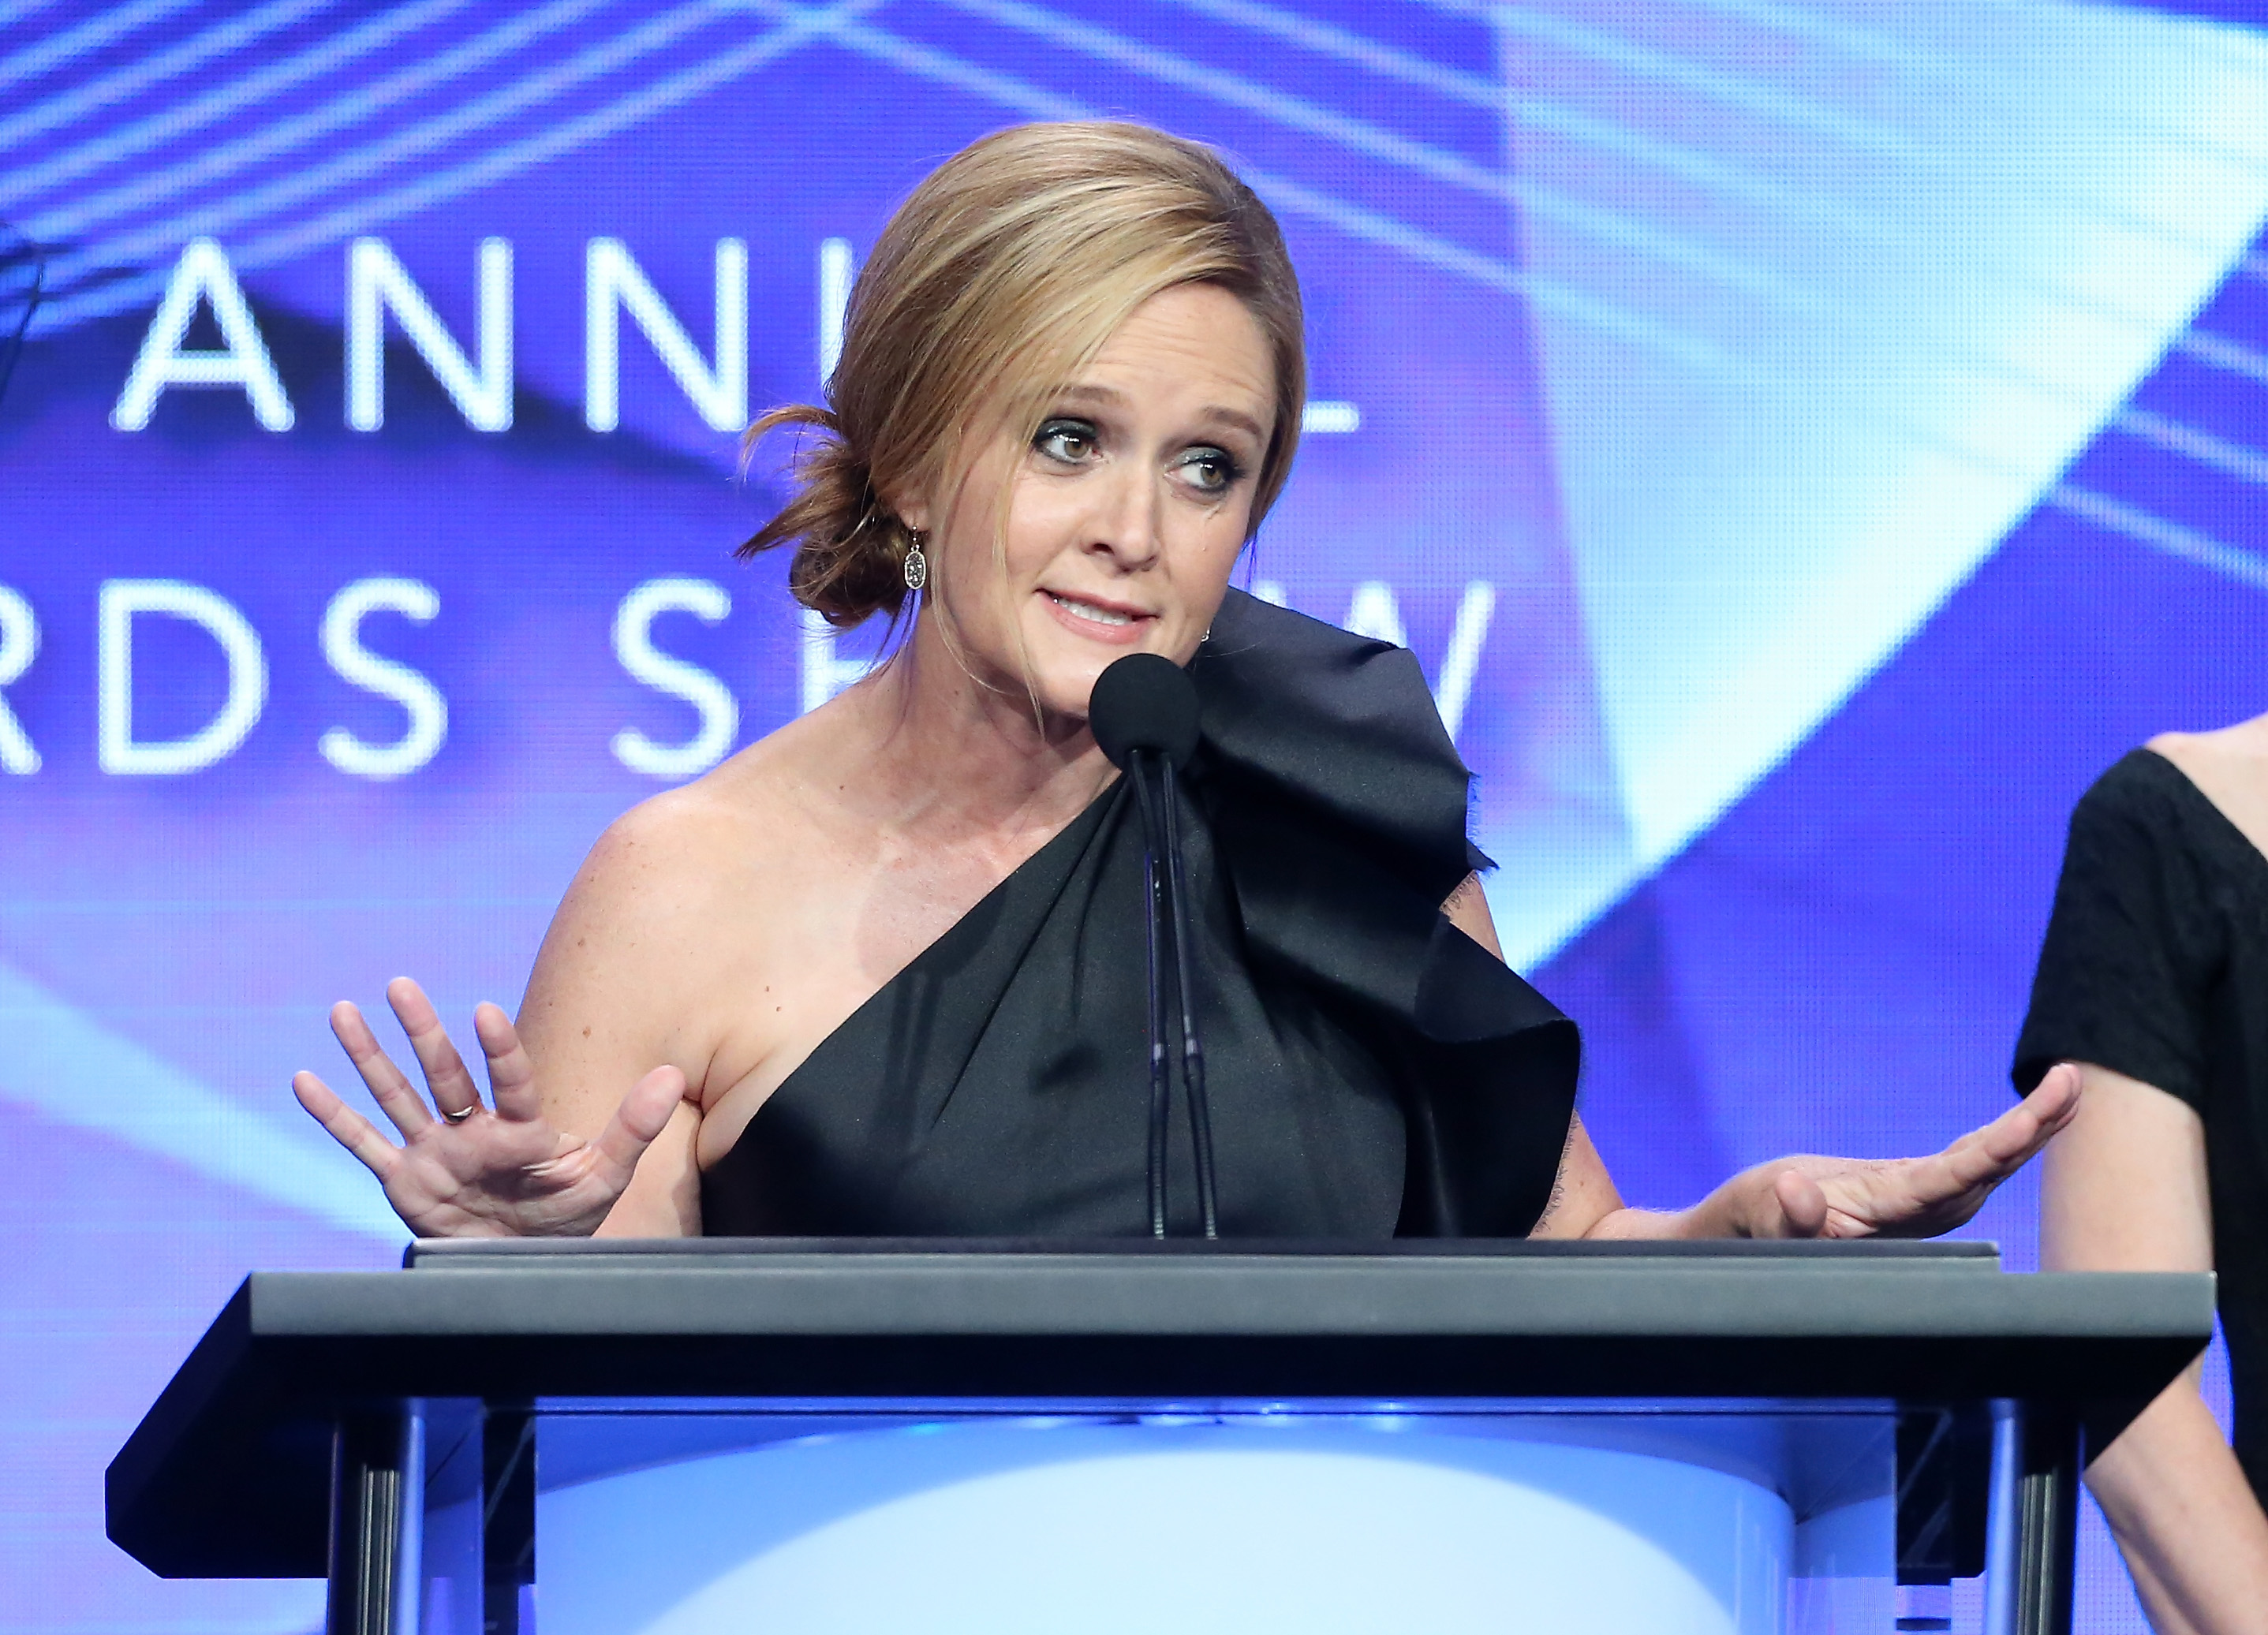 Samantha Bee's EPIC rant from last night is a must-see